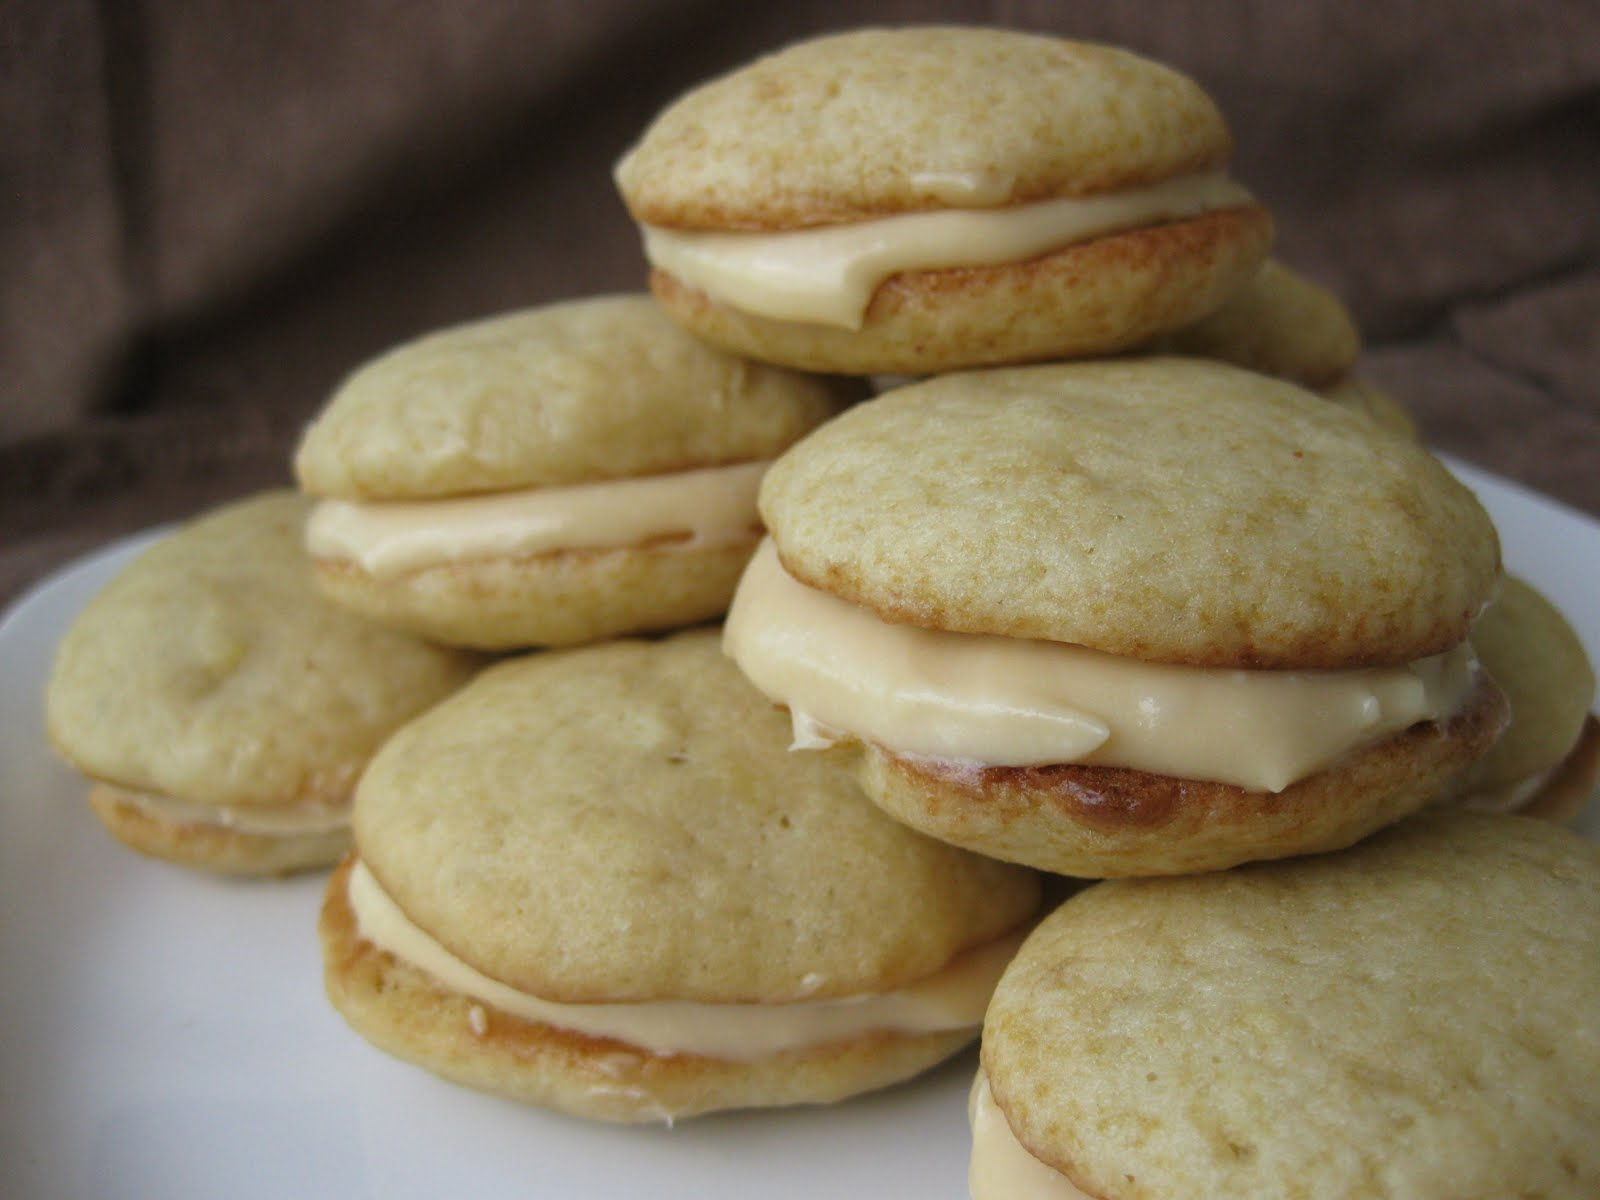 Banana Whoopie Pies with Caramel Cream Cheese Filling | Once Upon a ...